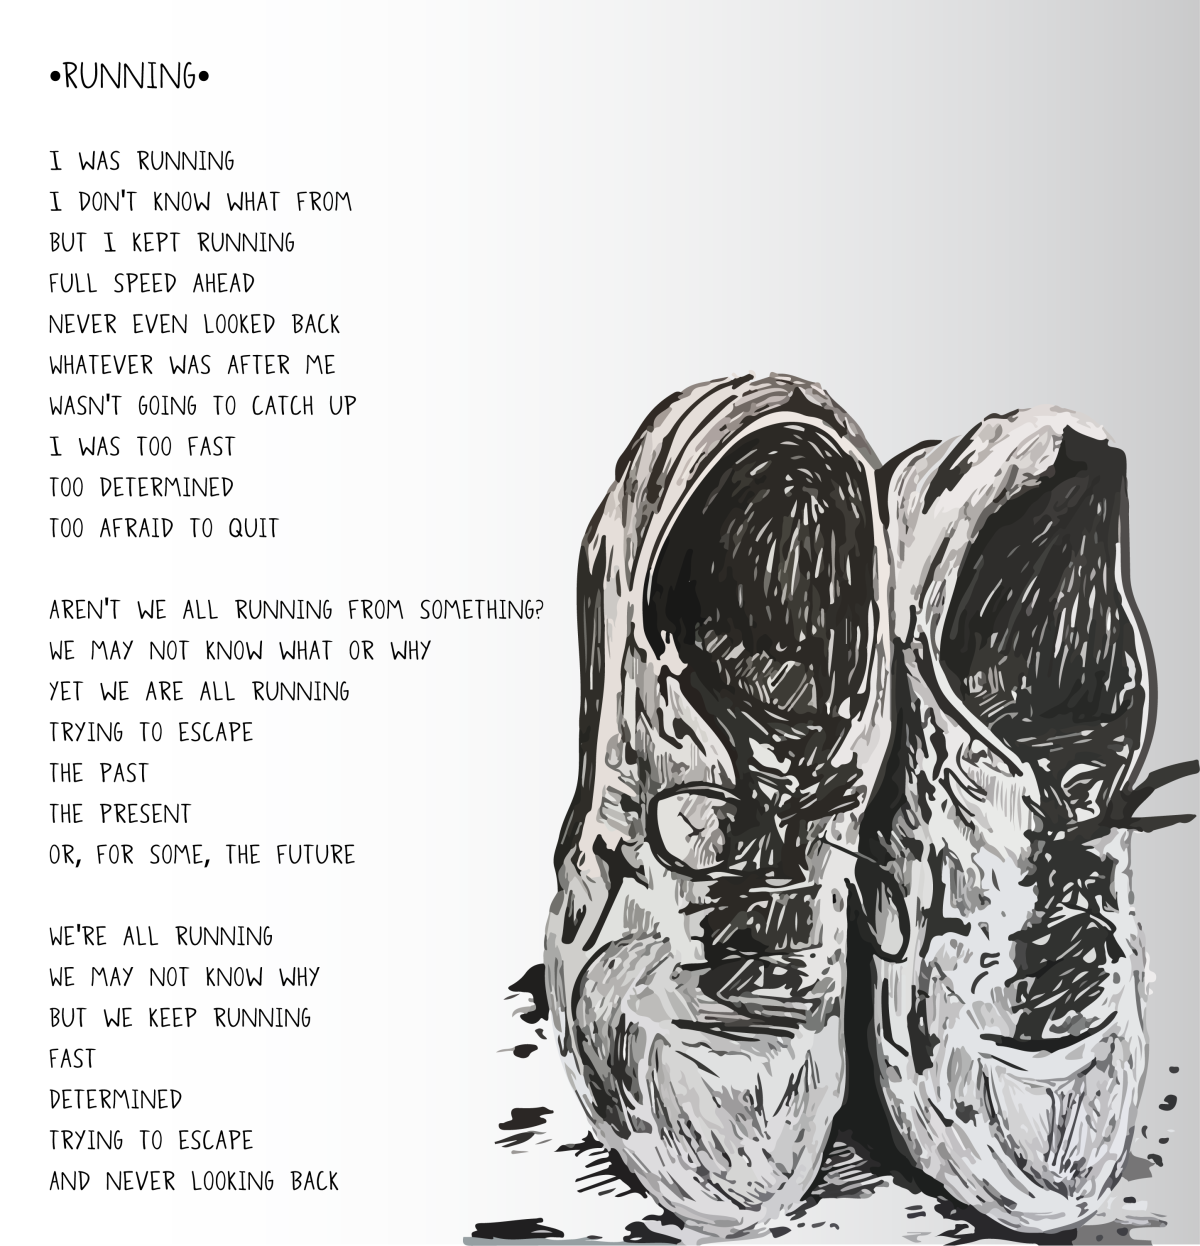 Running Poem Art and Lyricsbigger-01.png